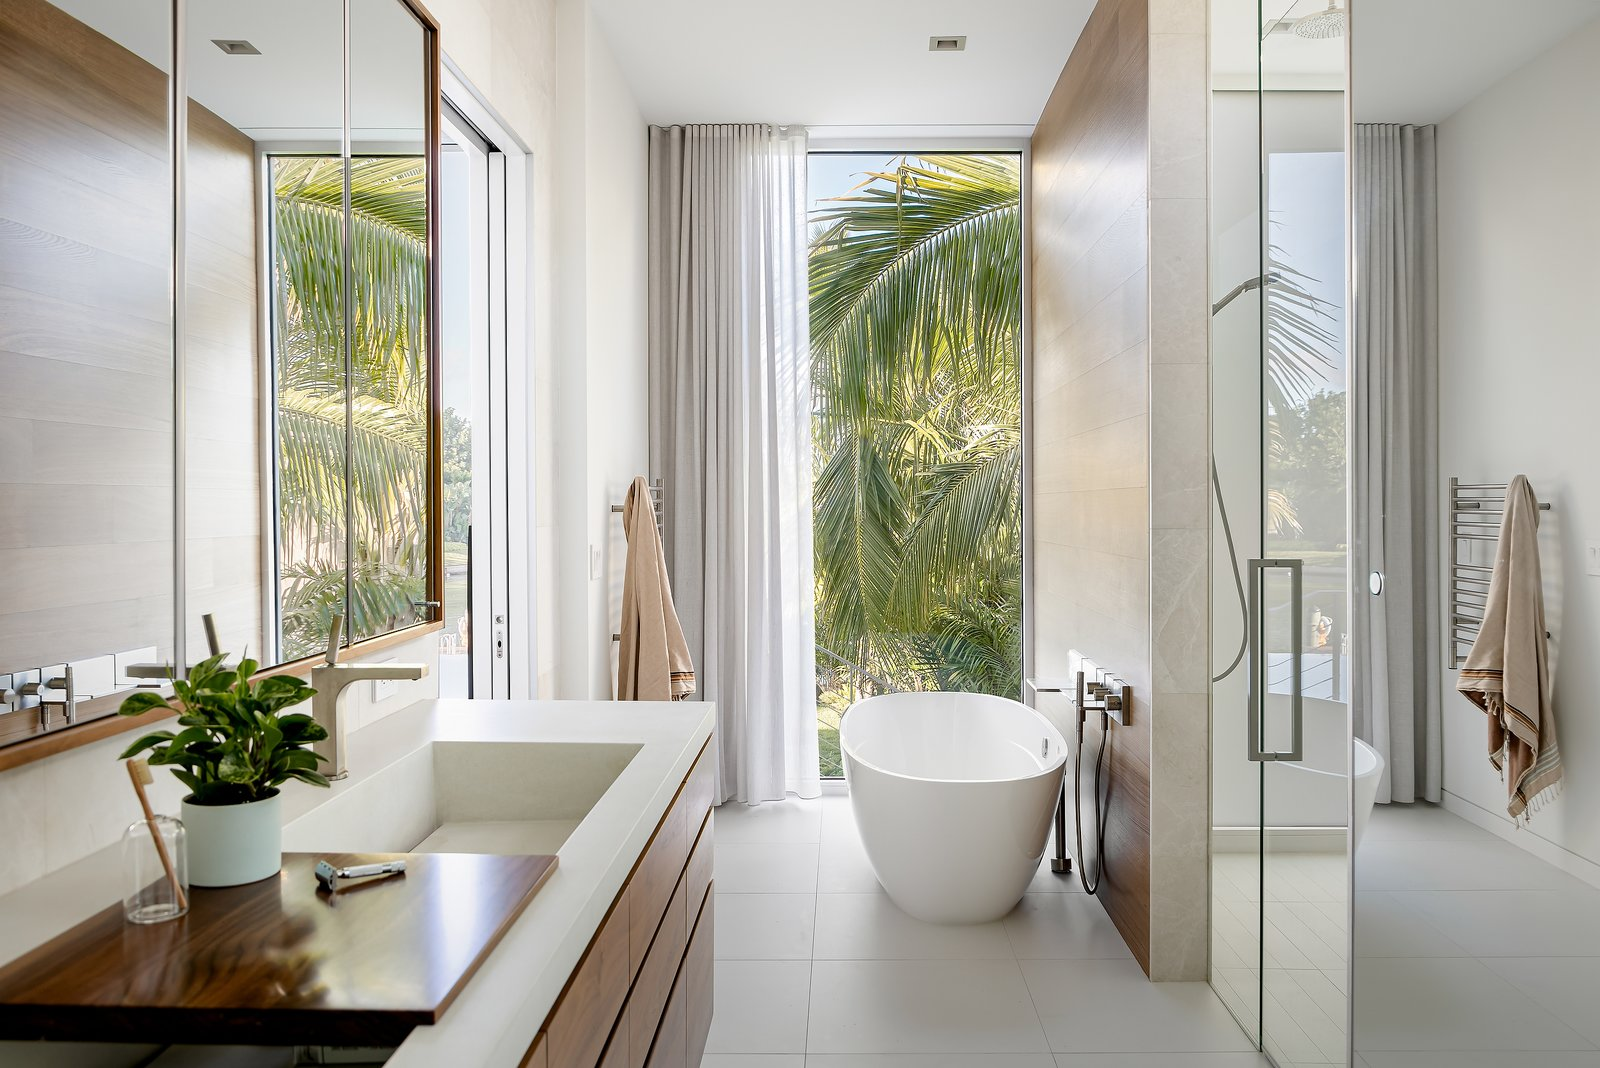 Bath Room, Stone Slab Wall, Concrete Counter, Porcelain Tile Floor, Freestanding Tub, Ceiling Lighting, Recessed Lighting, Soaking Tub, Wall Mount Sink, One Piece Toilet, and Enclosed Shower  Bayview House by Leader Design Studio